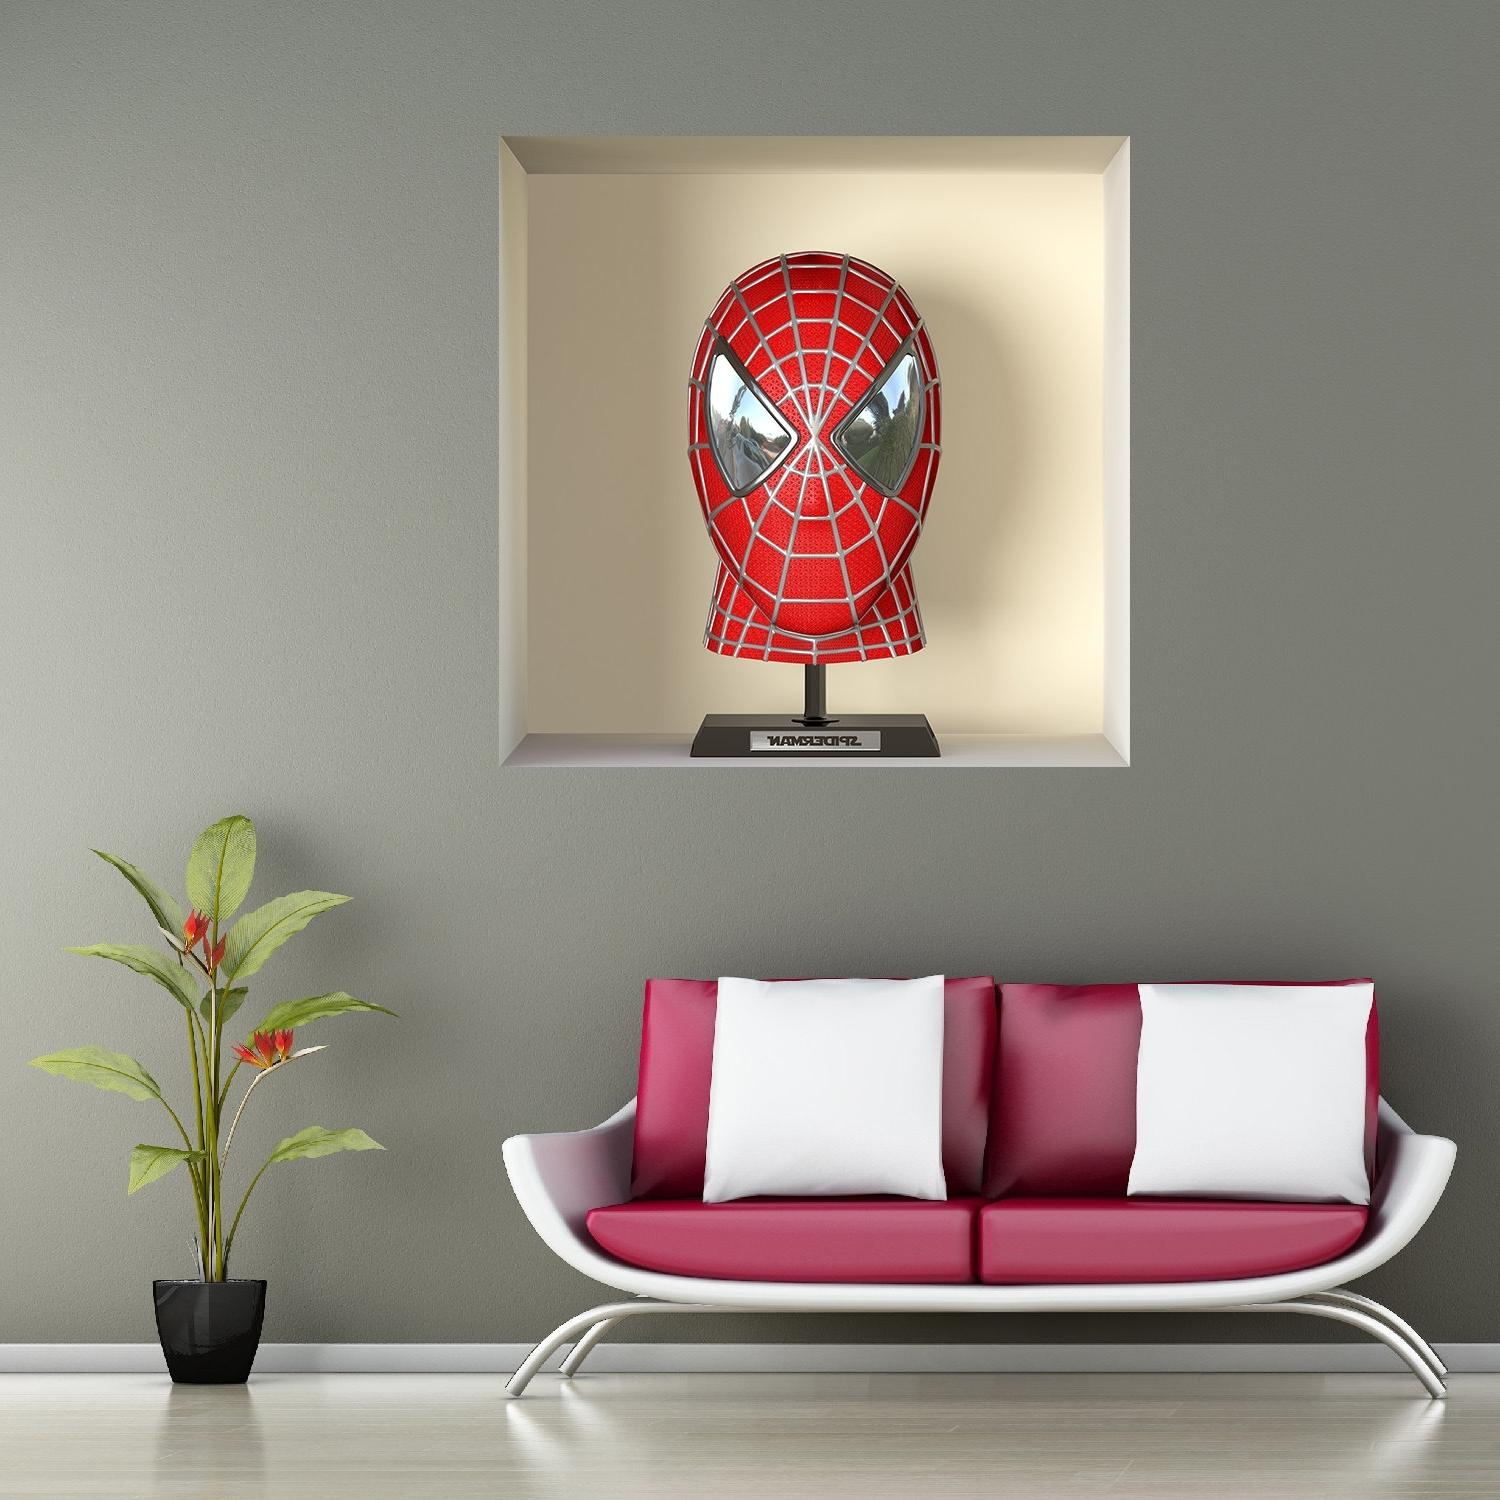 3d Wall Art Night Light 15 Best Ideas Of 3d Wall Art Night Light Spiderman Hand